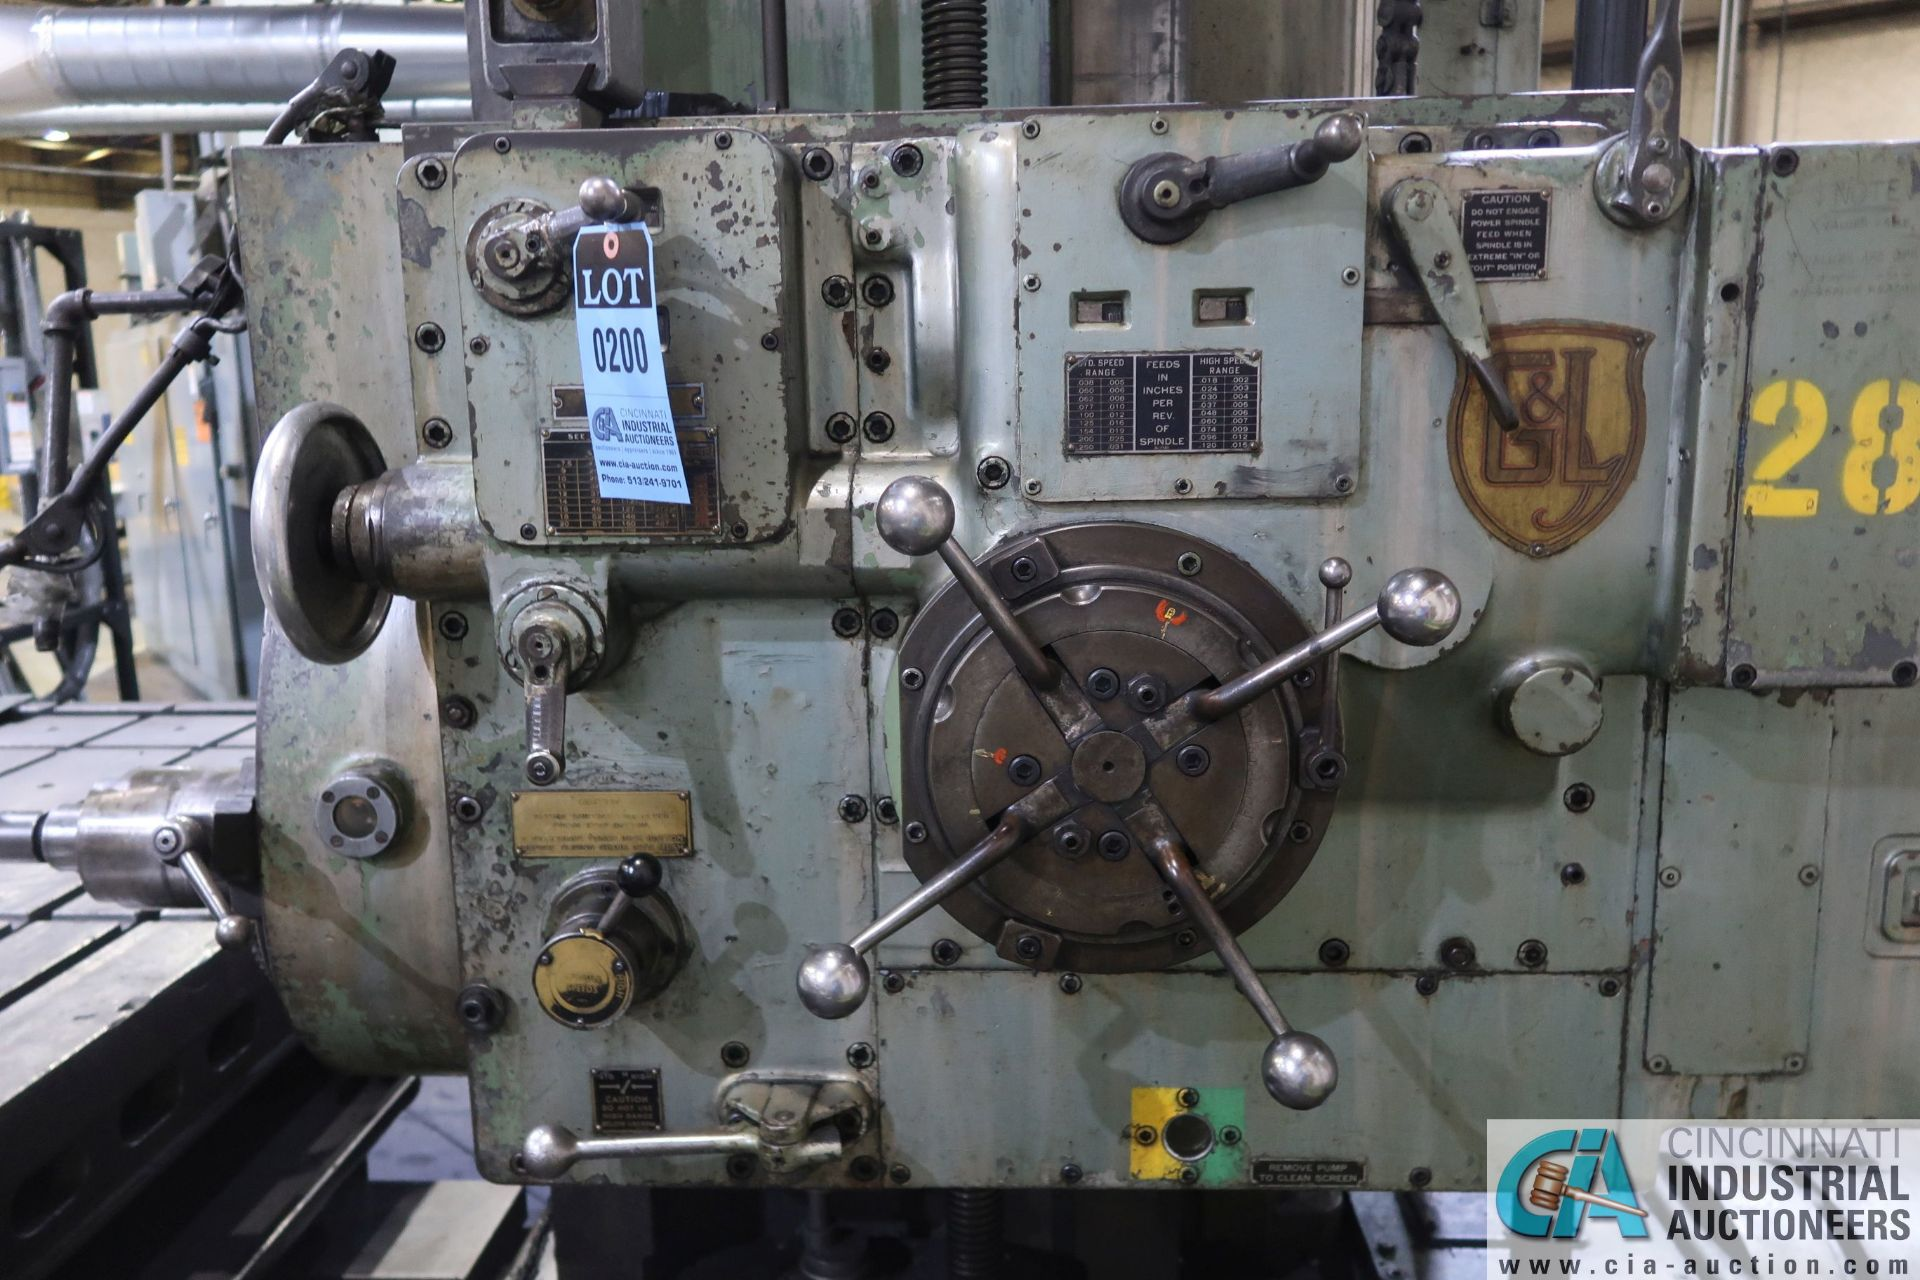 """GIDDINGS AND LEWIS MODEL 350T HORIZONTAL BORING MILL; S/N 150-90-65, 4' X 7' TABLE WITH (2) 24"""" FACE - Image 6 of 16"""